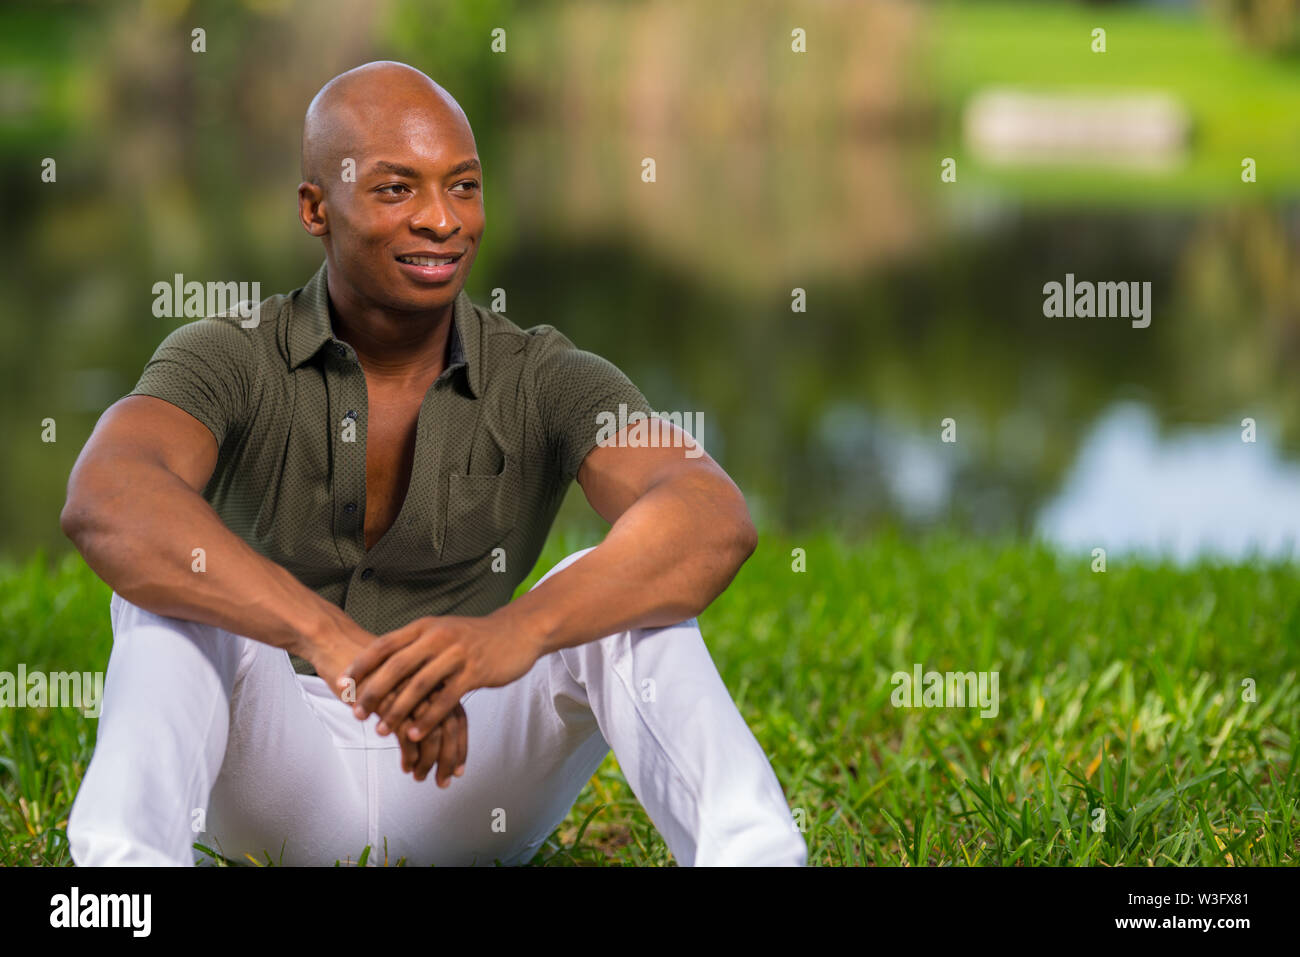 Portrait of a fashionable African American man sitting on grass in the park. Man is smiling and glancing of camera - Stock Image